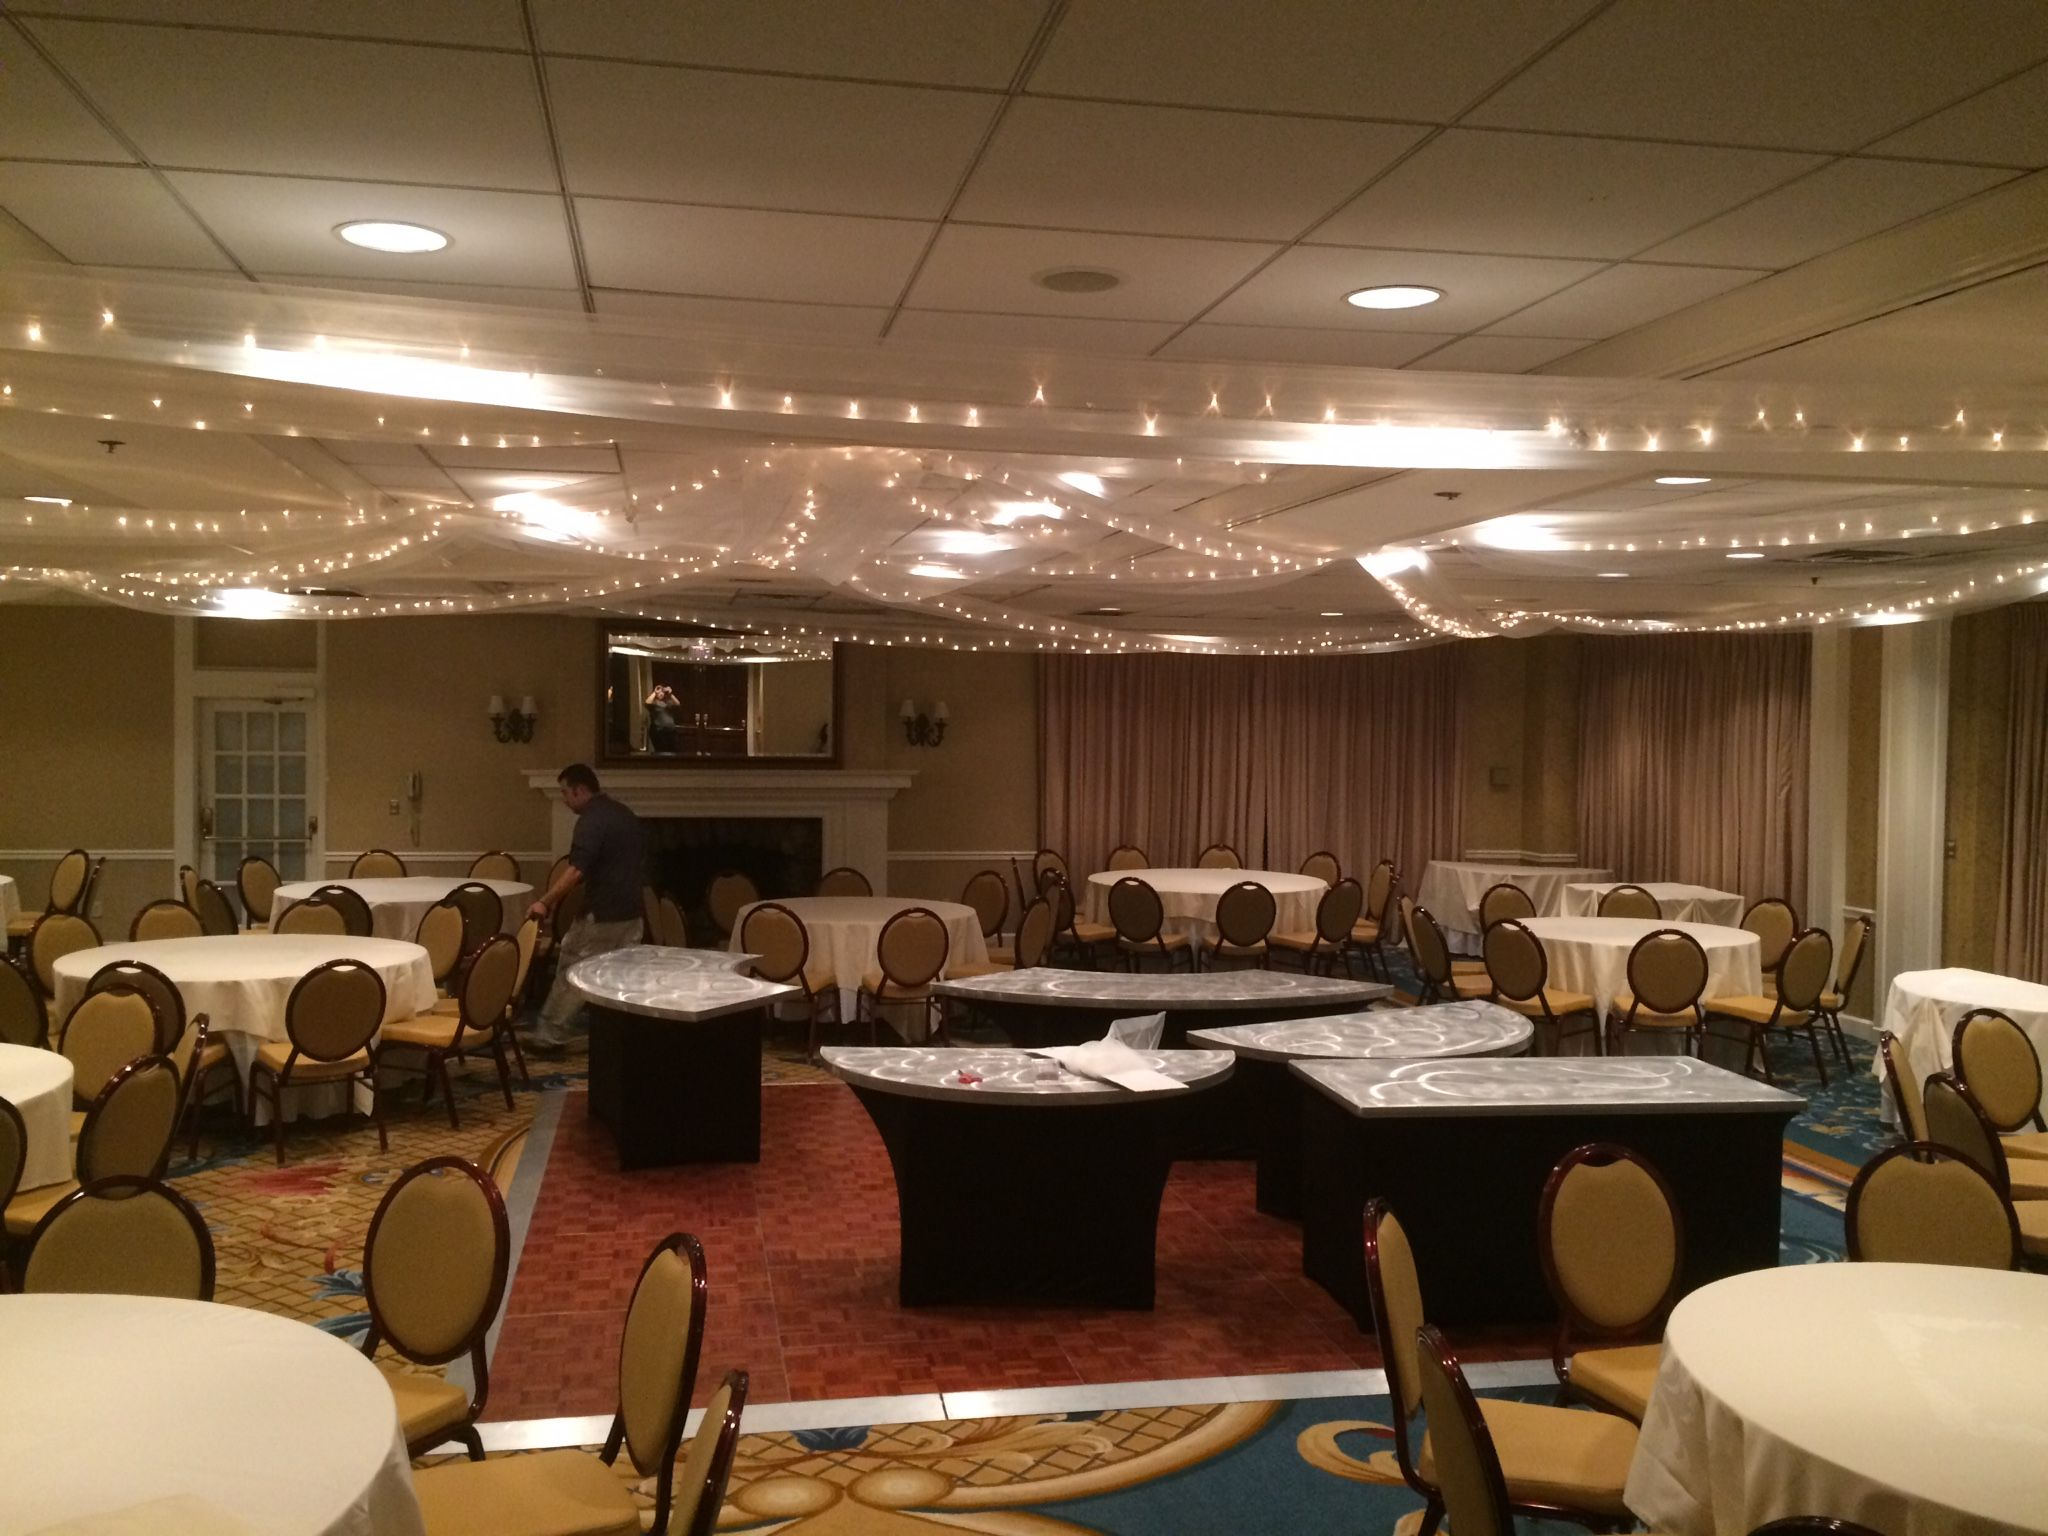 Ceiling draping and lighting #ceilingdrapery #lighting # ...